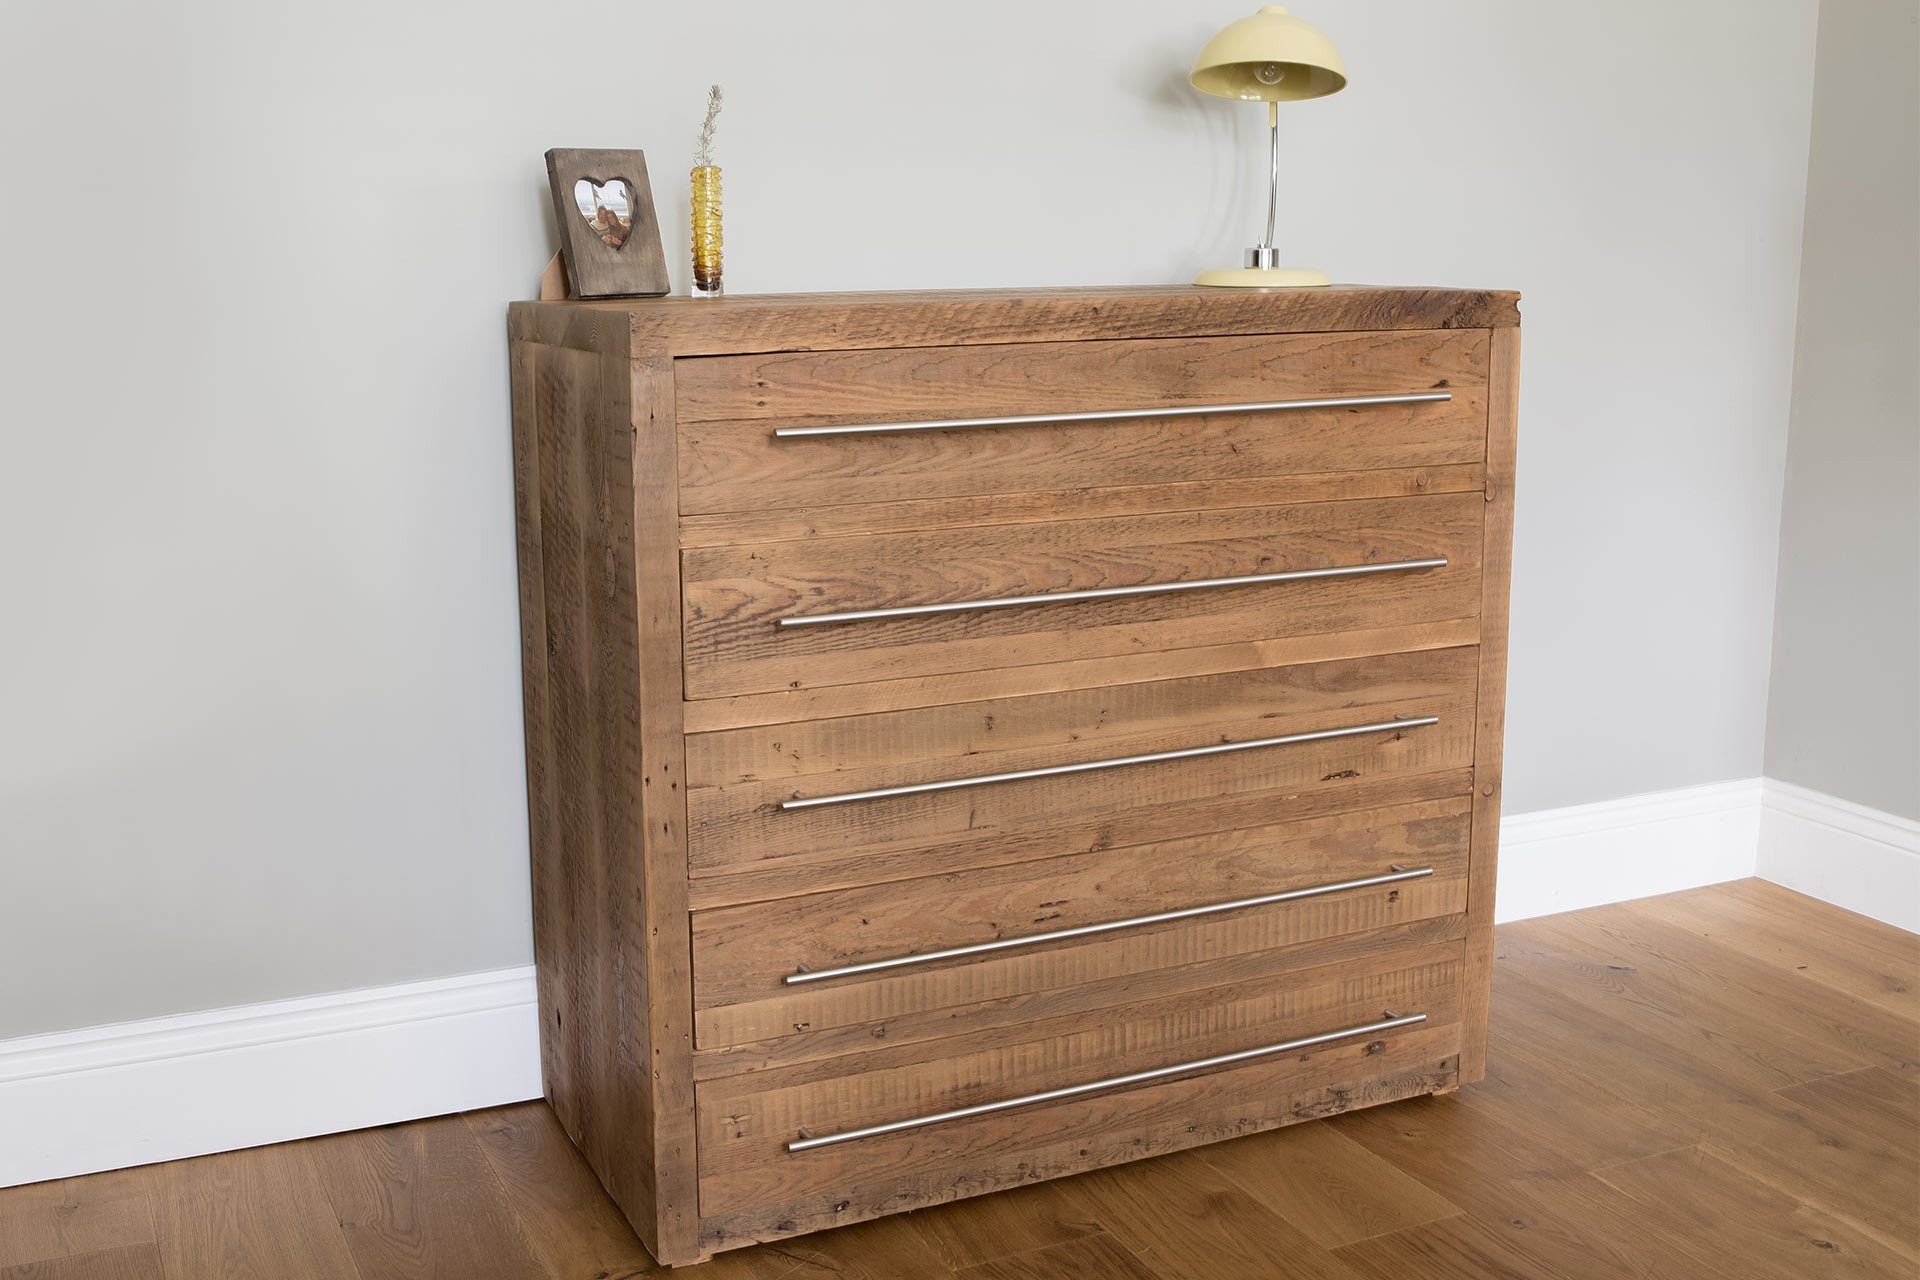 Warm 107cm Chest With 5 Drawers & Bar Handles